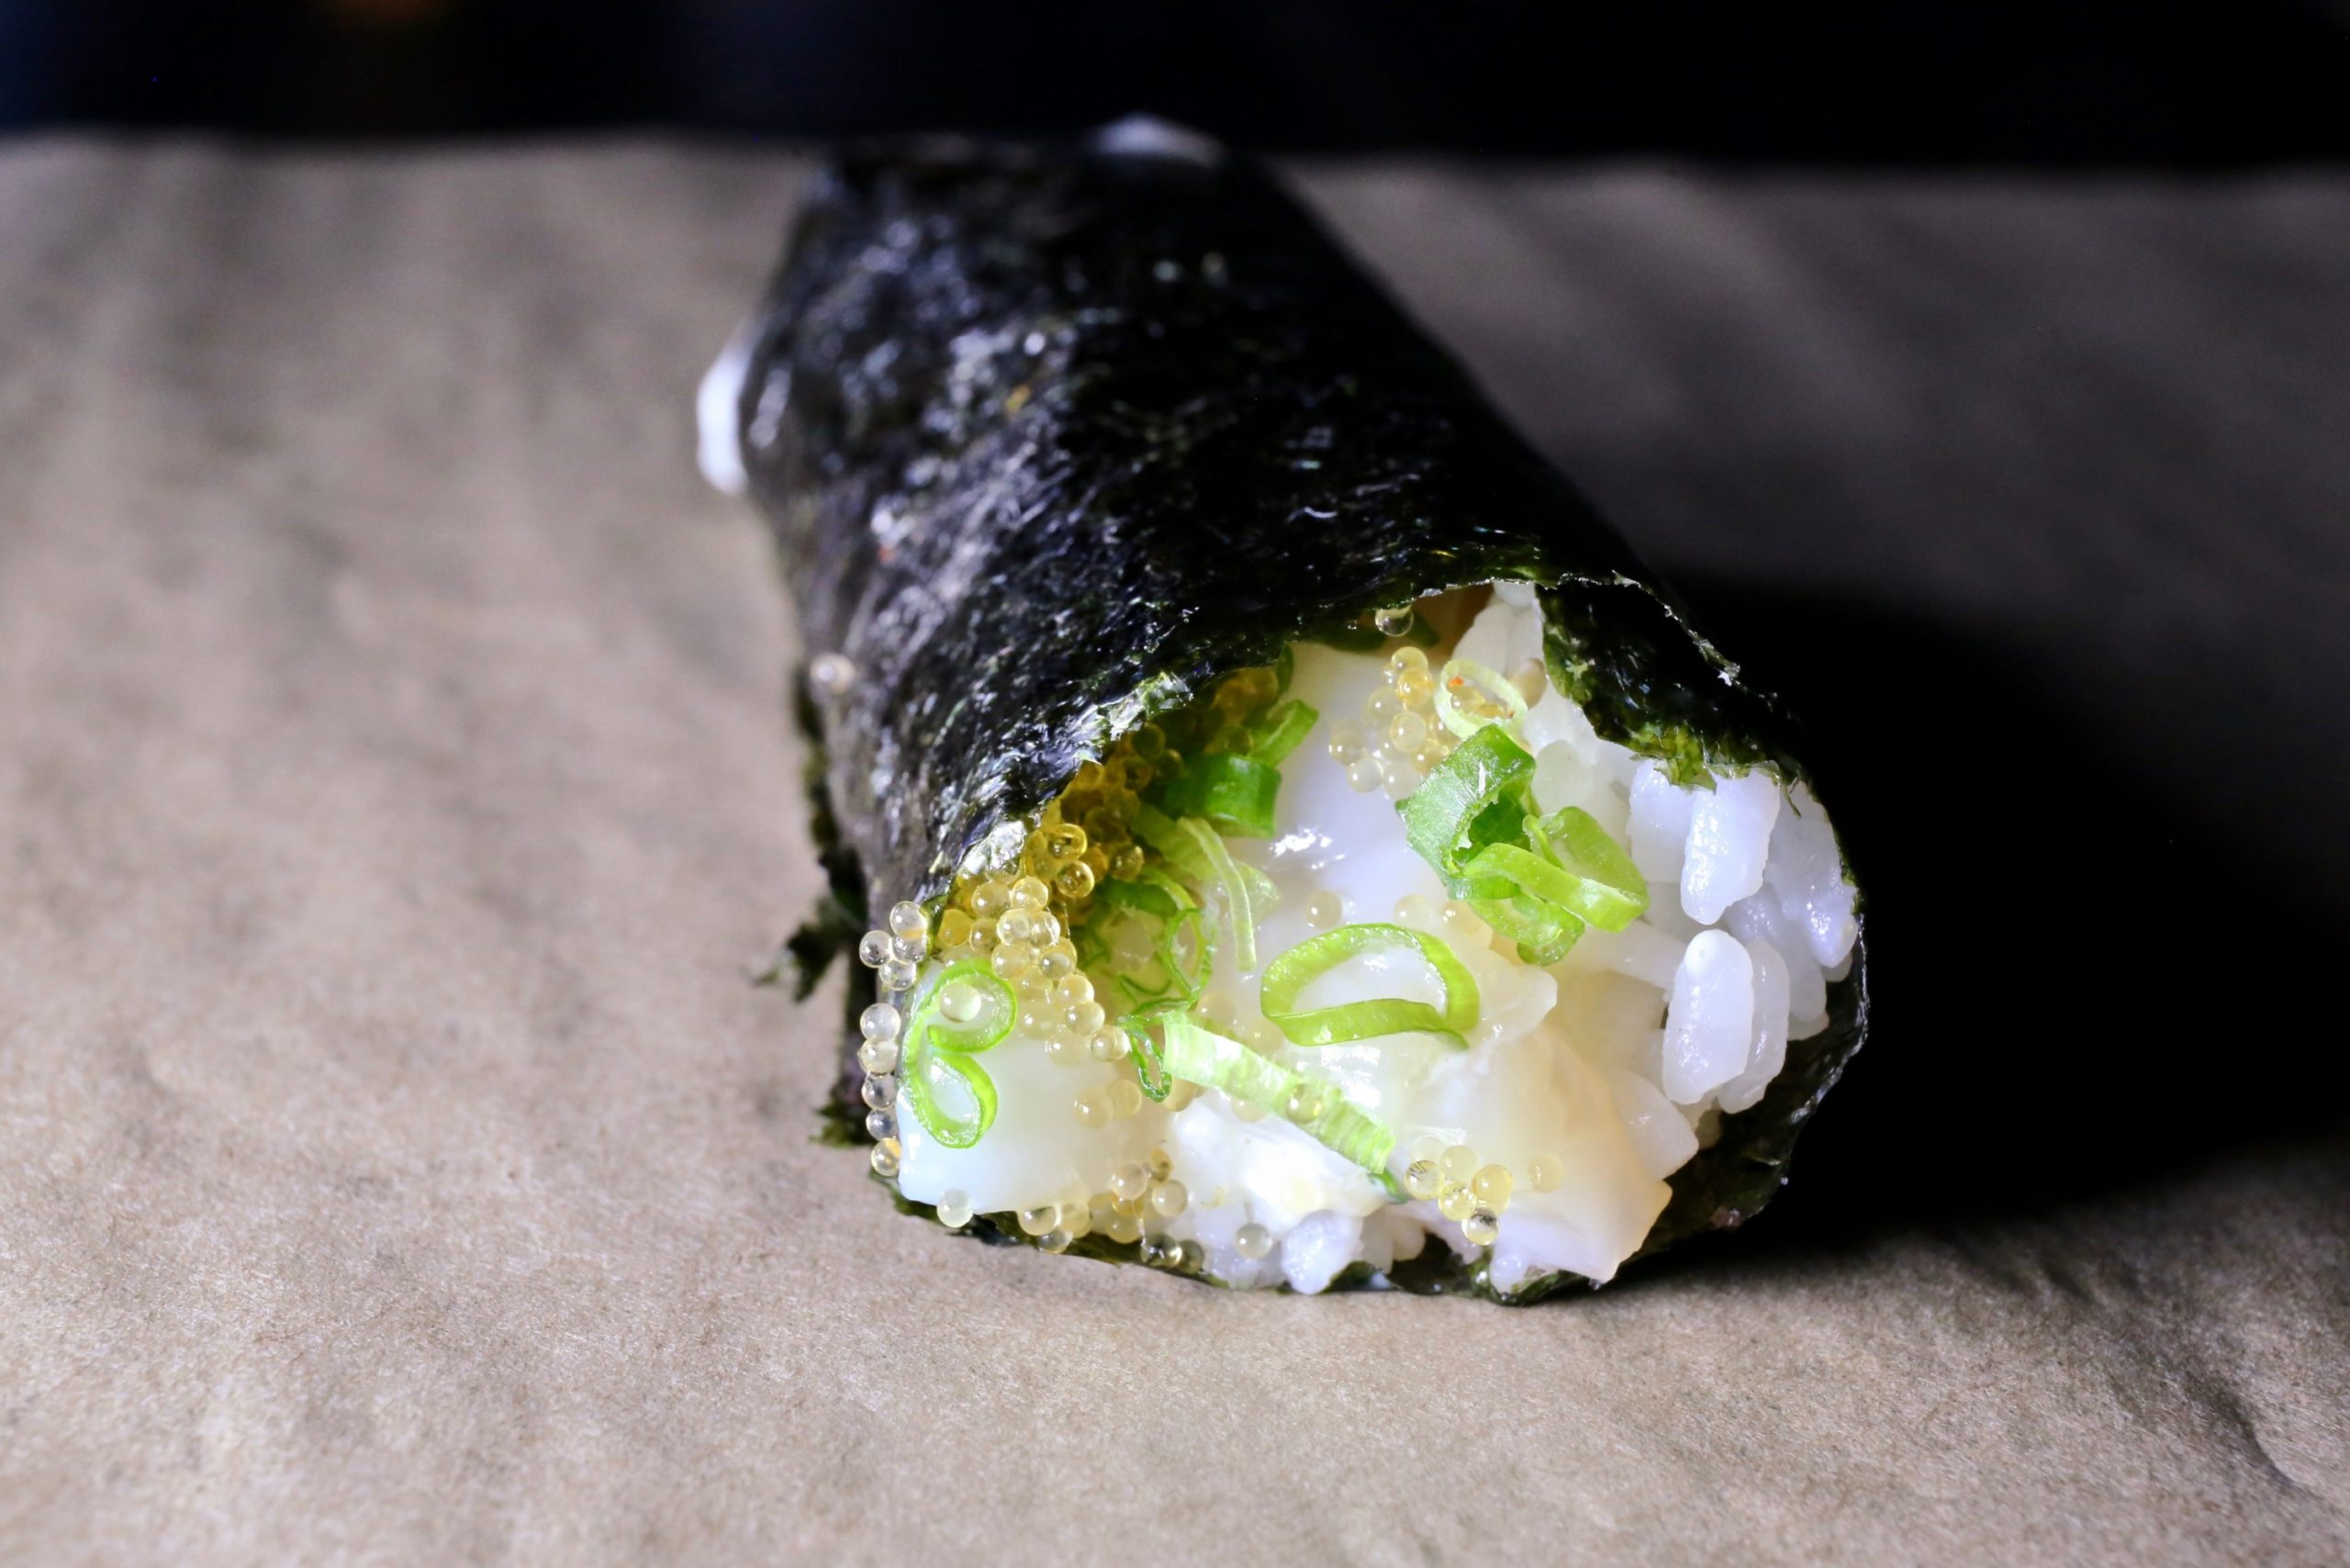 The Handover focuses on temaki. Photo by Evy Mages.